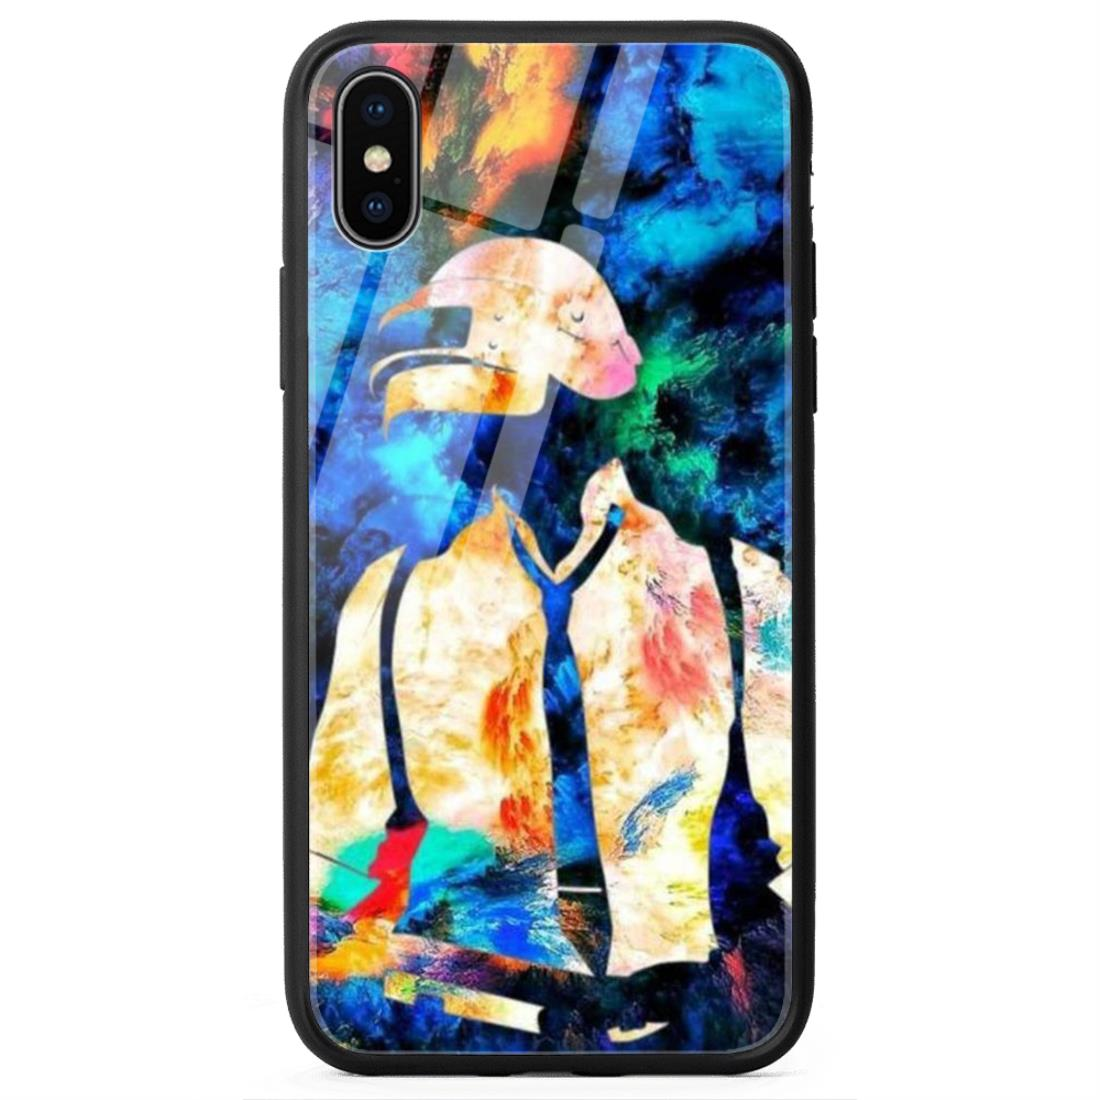 Phone Cases,Apple Phone Cases,iPhone X Glass Case,Gaming